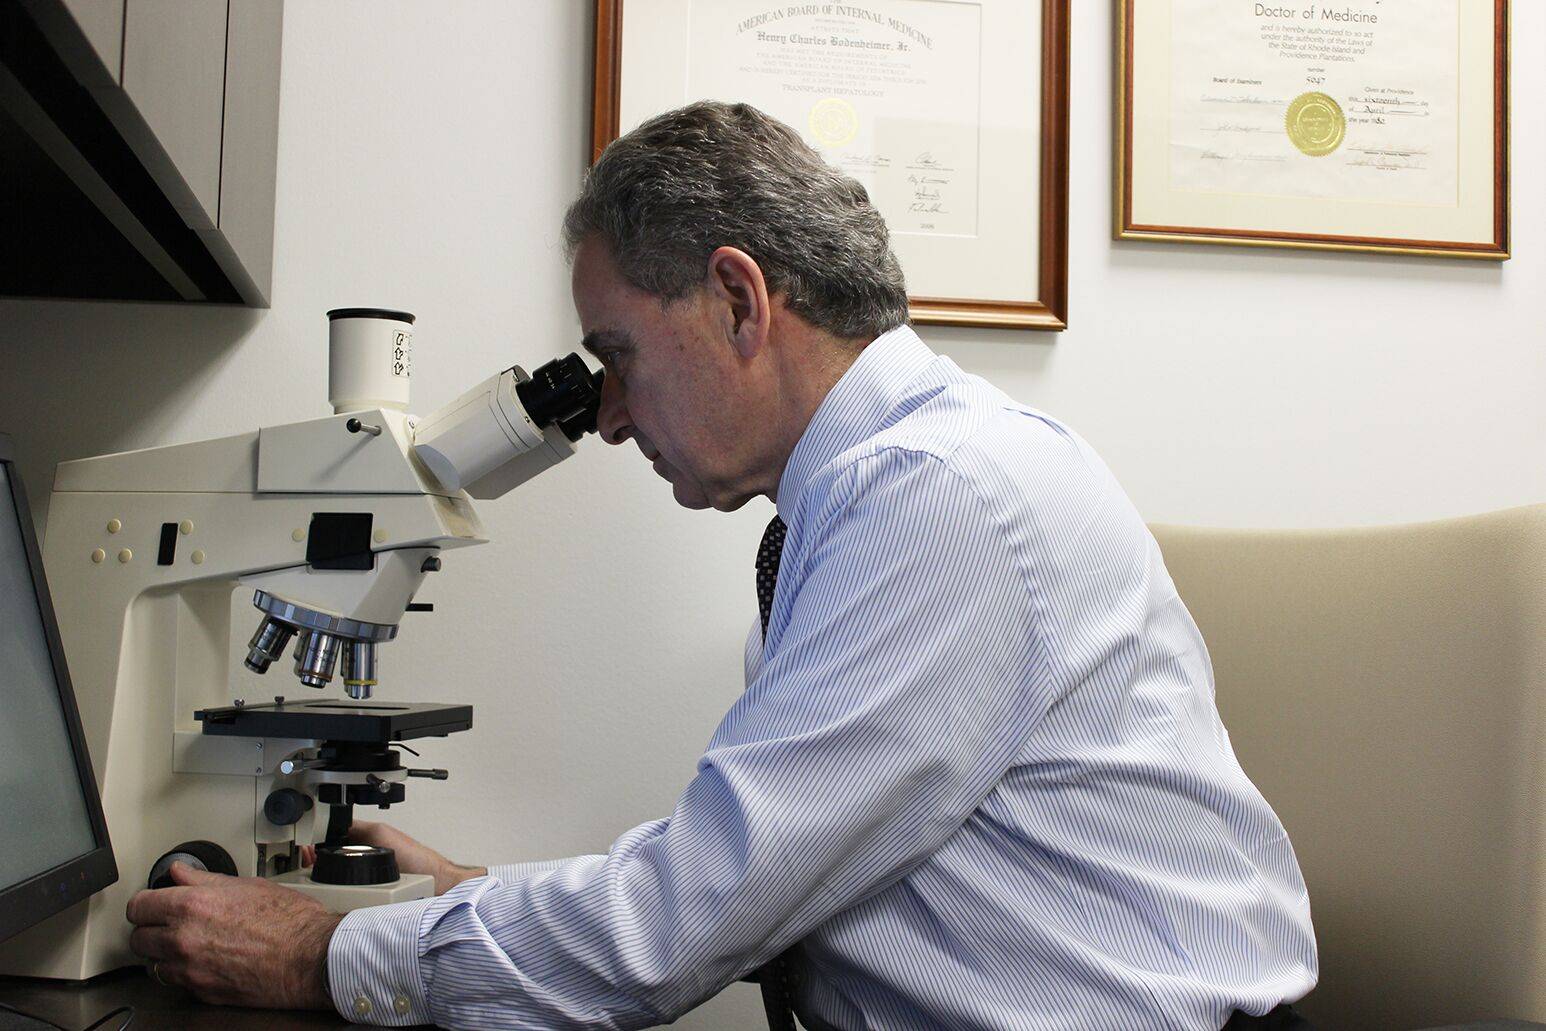 Henry Bodenheimer, MD, looks through a microscope. He is medical director of Northwell's liver transplant program, the first program of its kind on Long Island.